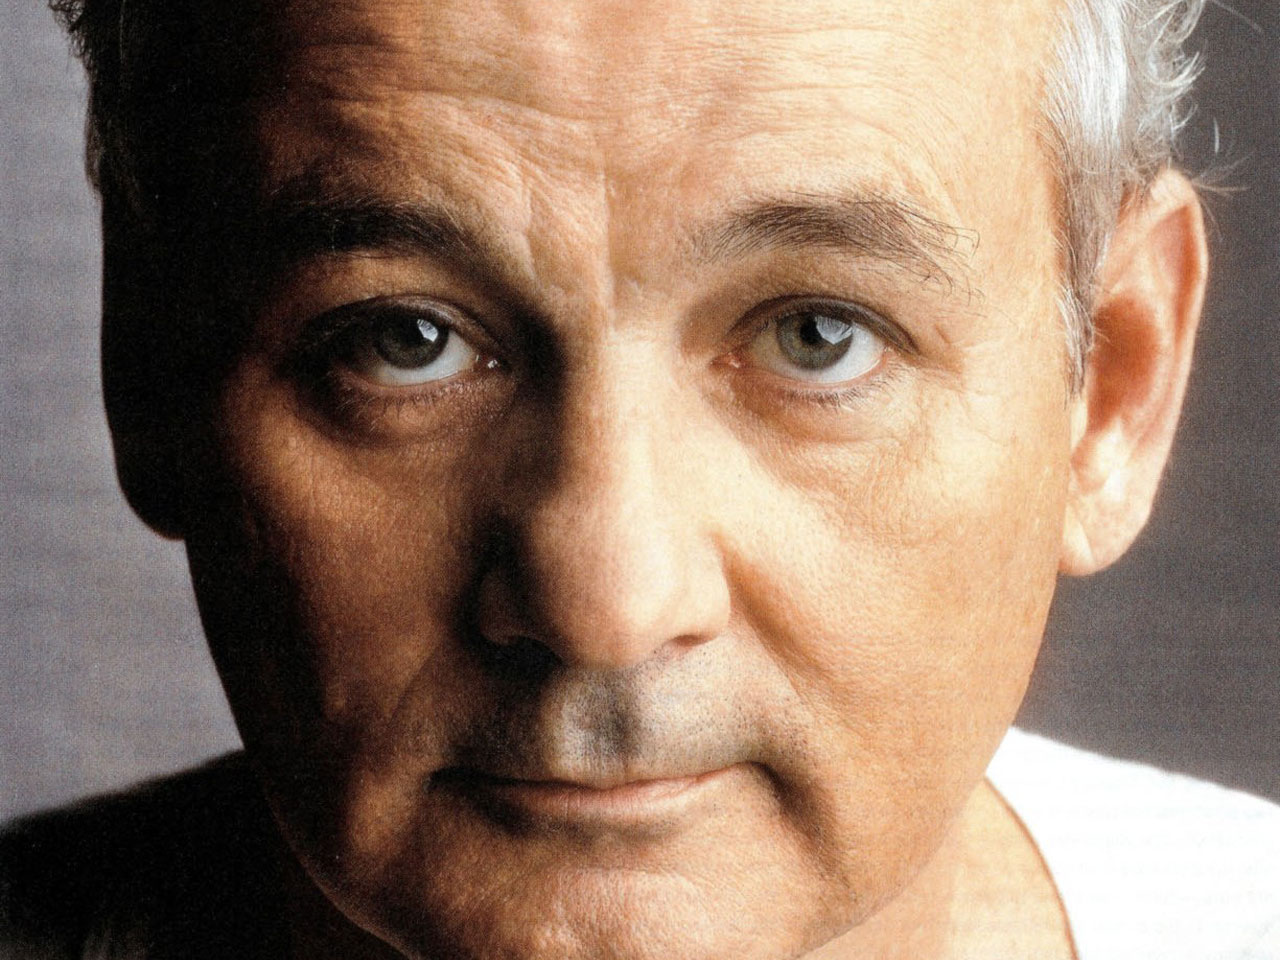 Legendary actor Bill Murray will voice Baloo in the Disney remake of Jungle Book. Murray will play the role of the bear who befriends Mowgli, and the actor ...